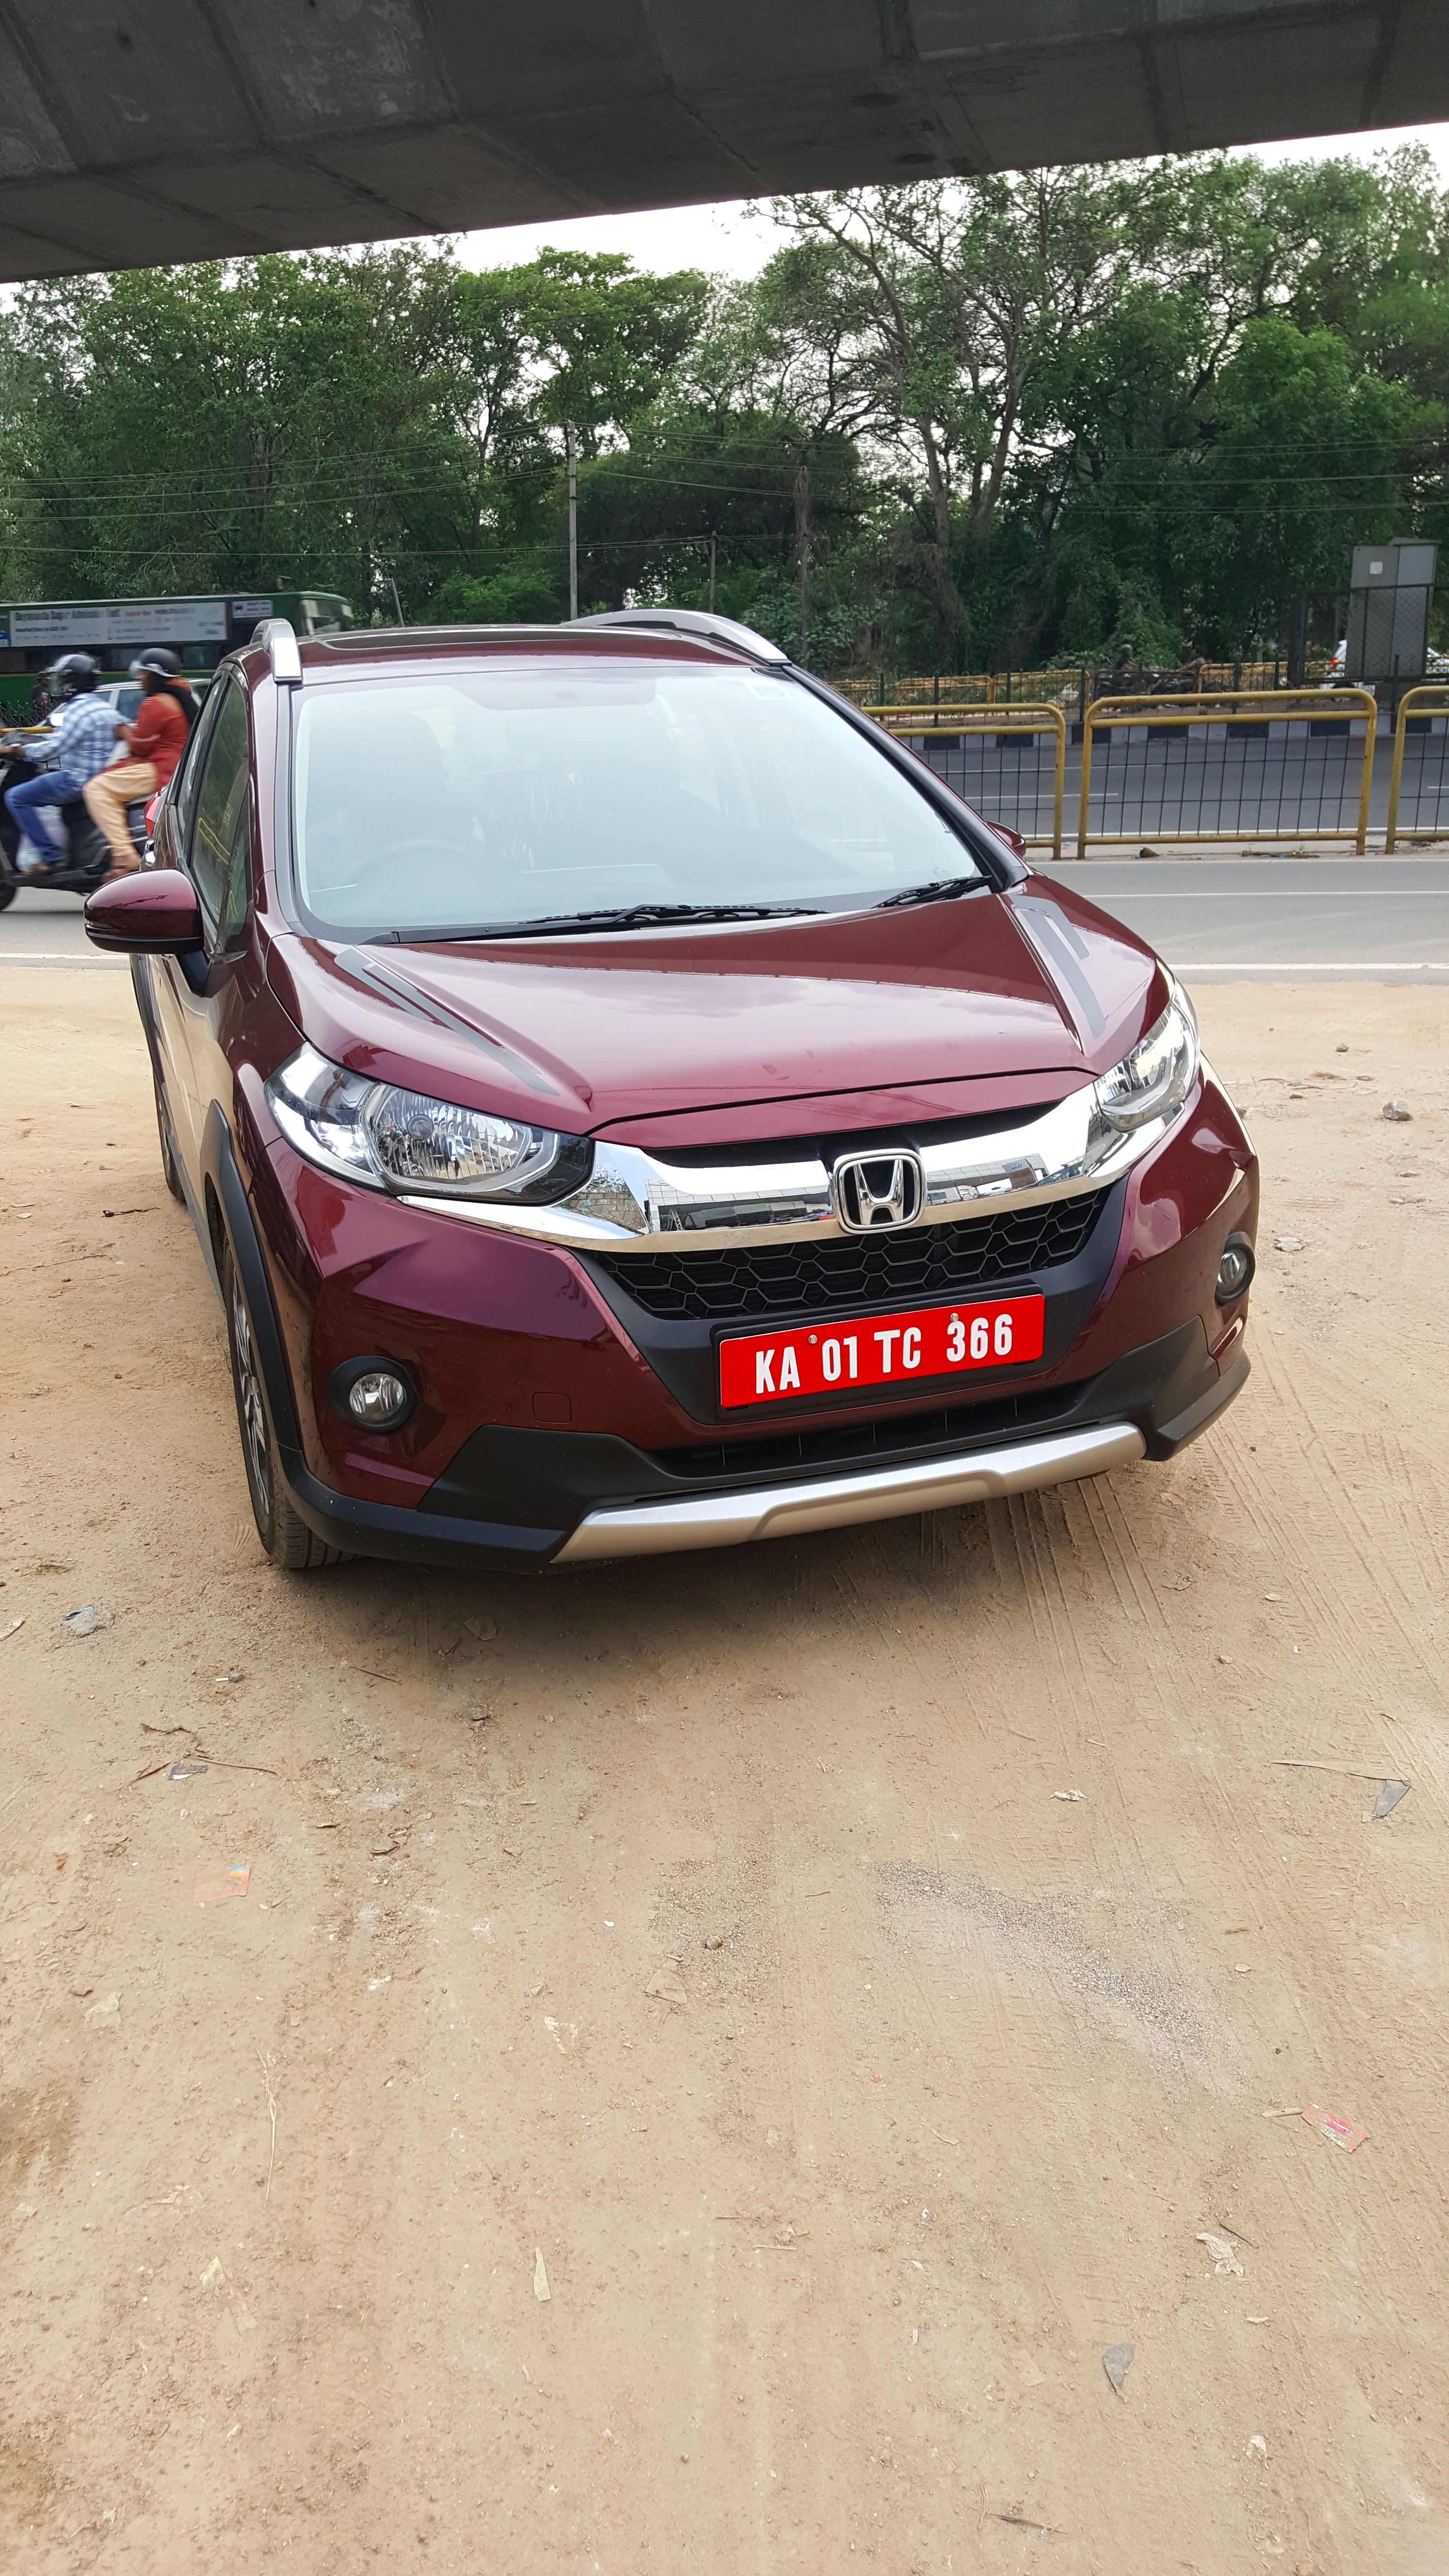 Honda Wrv First Impressions And Drive Review The Bangalore Blog